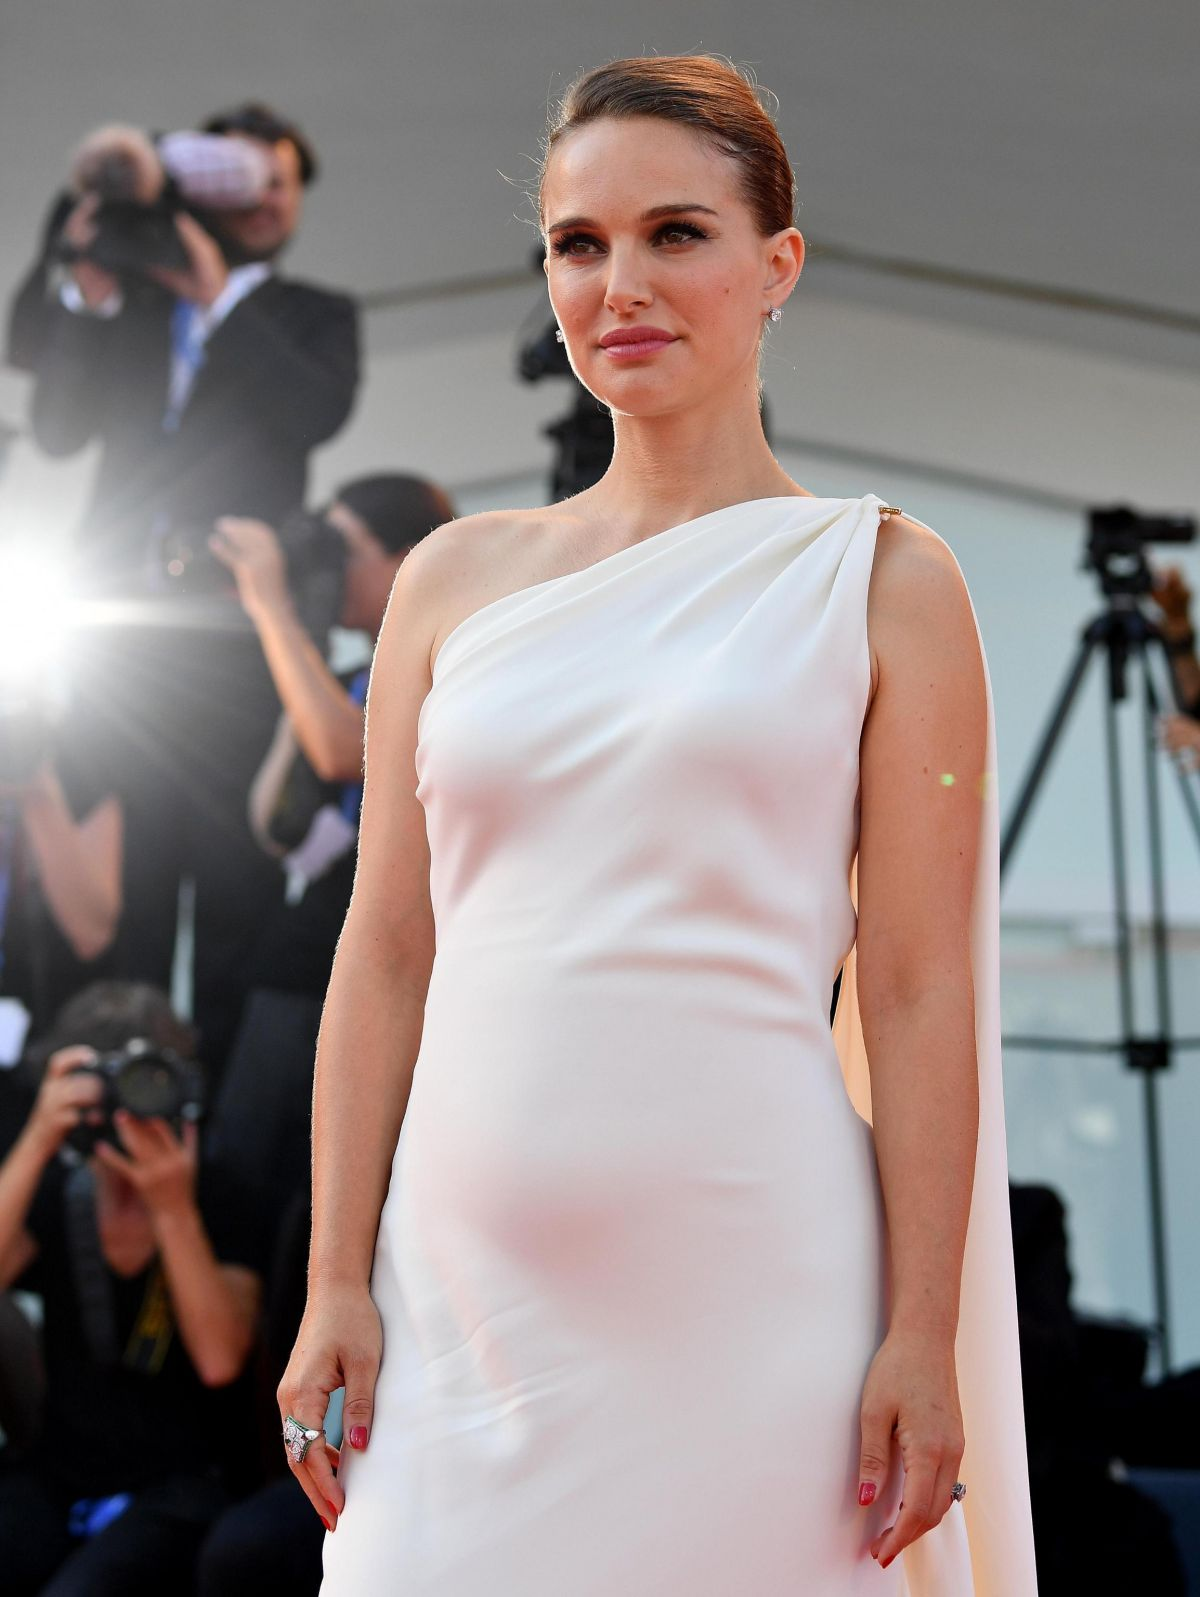 HQ Photos of Pregnant Natalie Portman in White Dress At Planetarium Premiere At 2016 Venice Film Festival